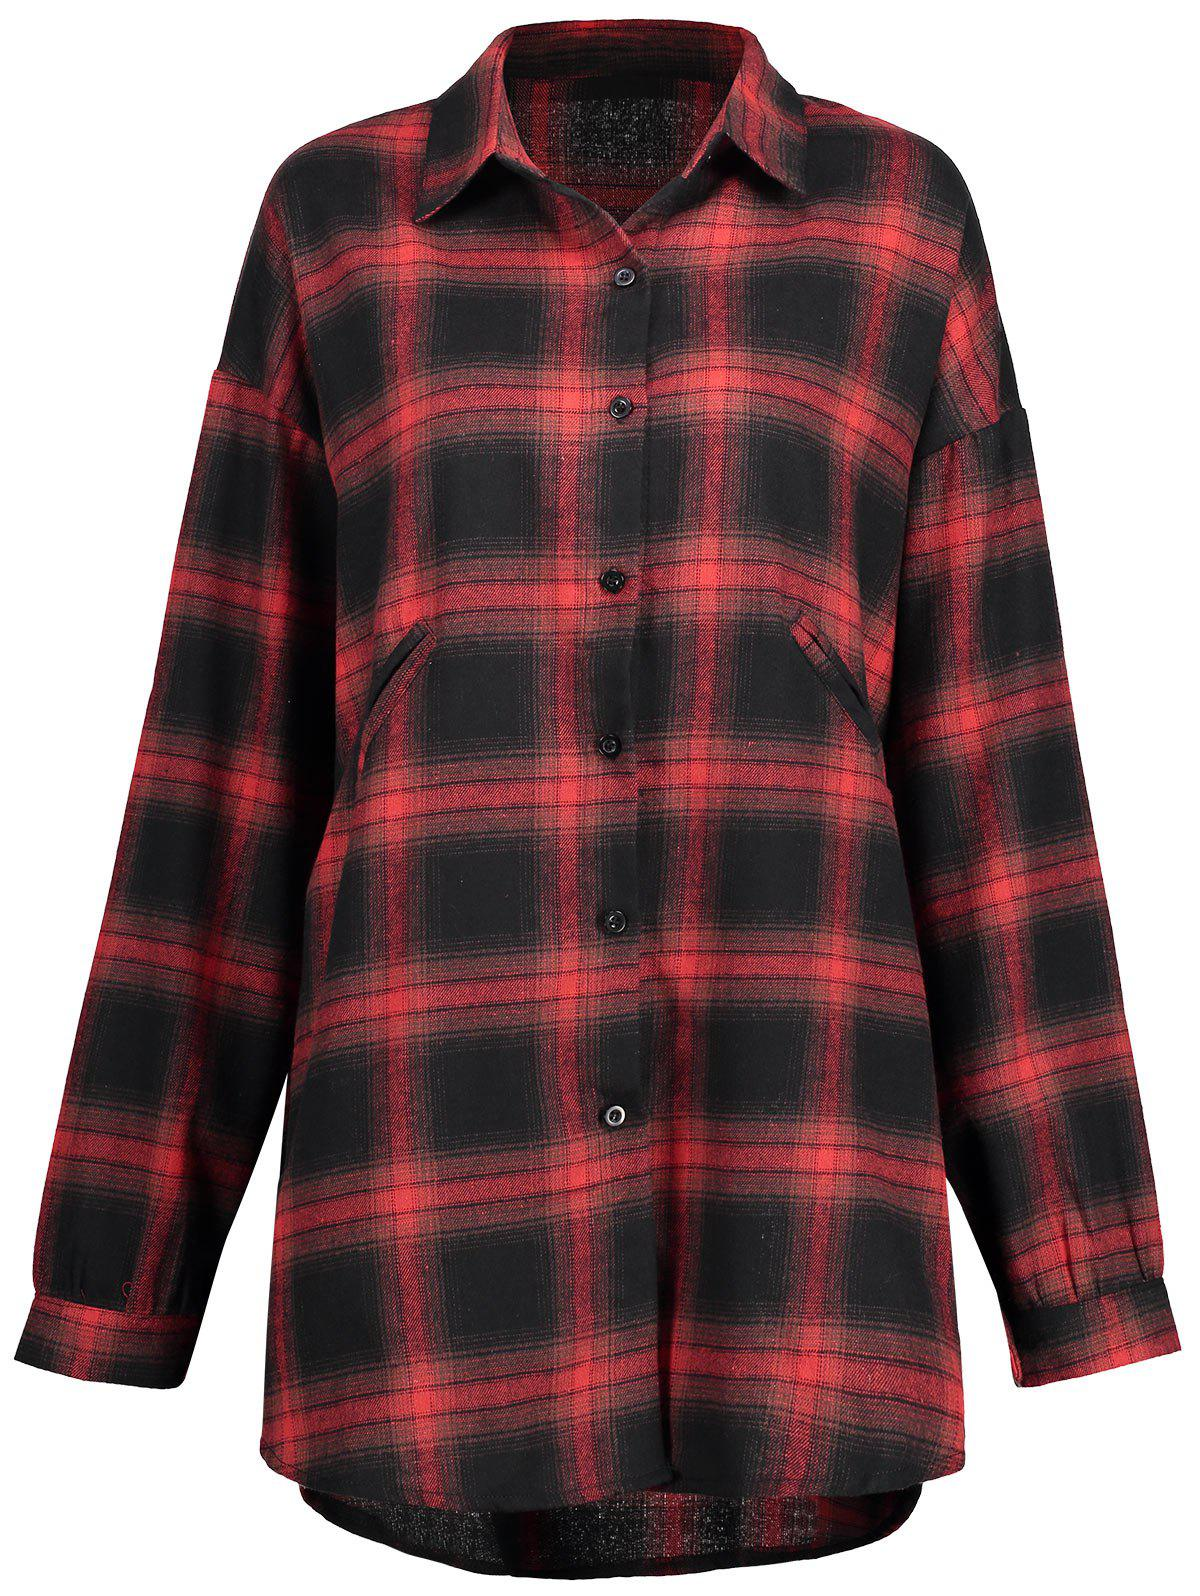 Hot Check Plus Size Button Up Shirt